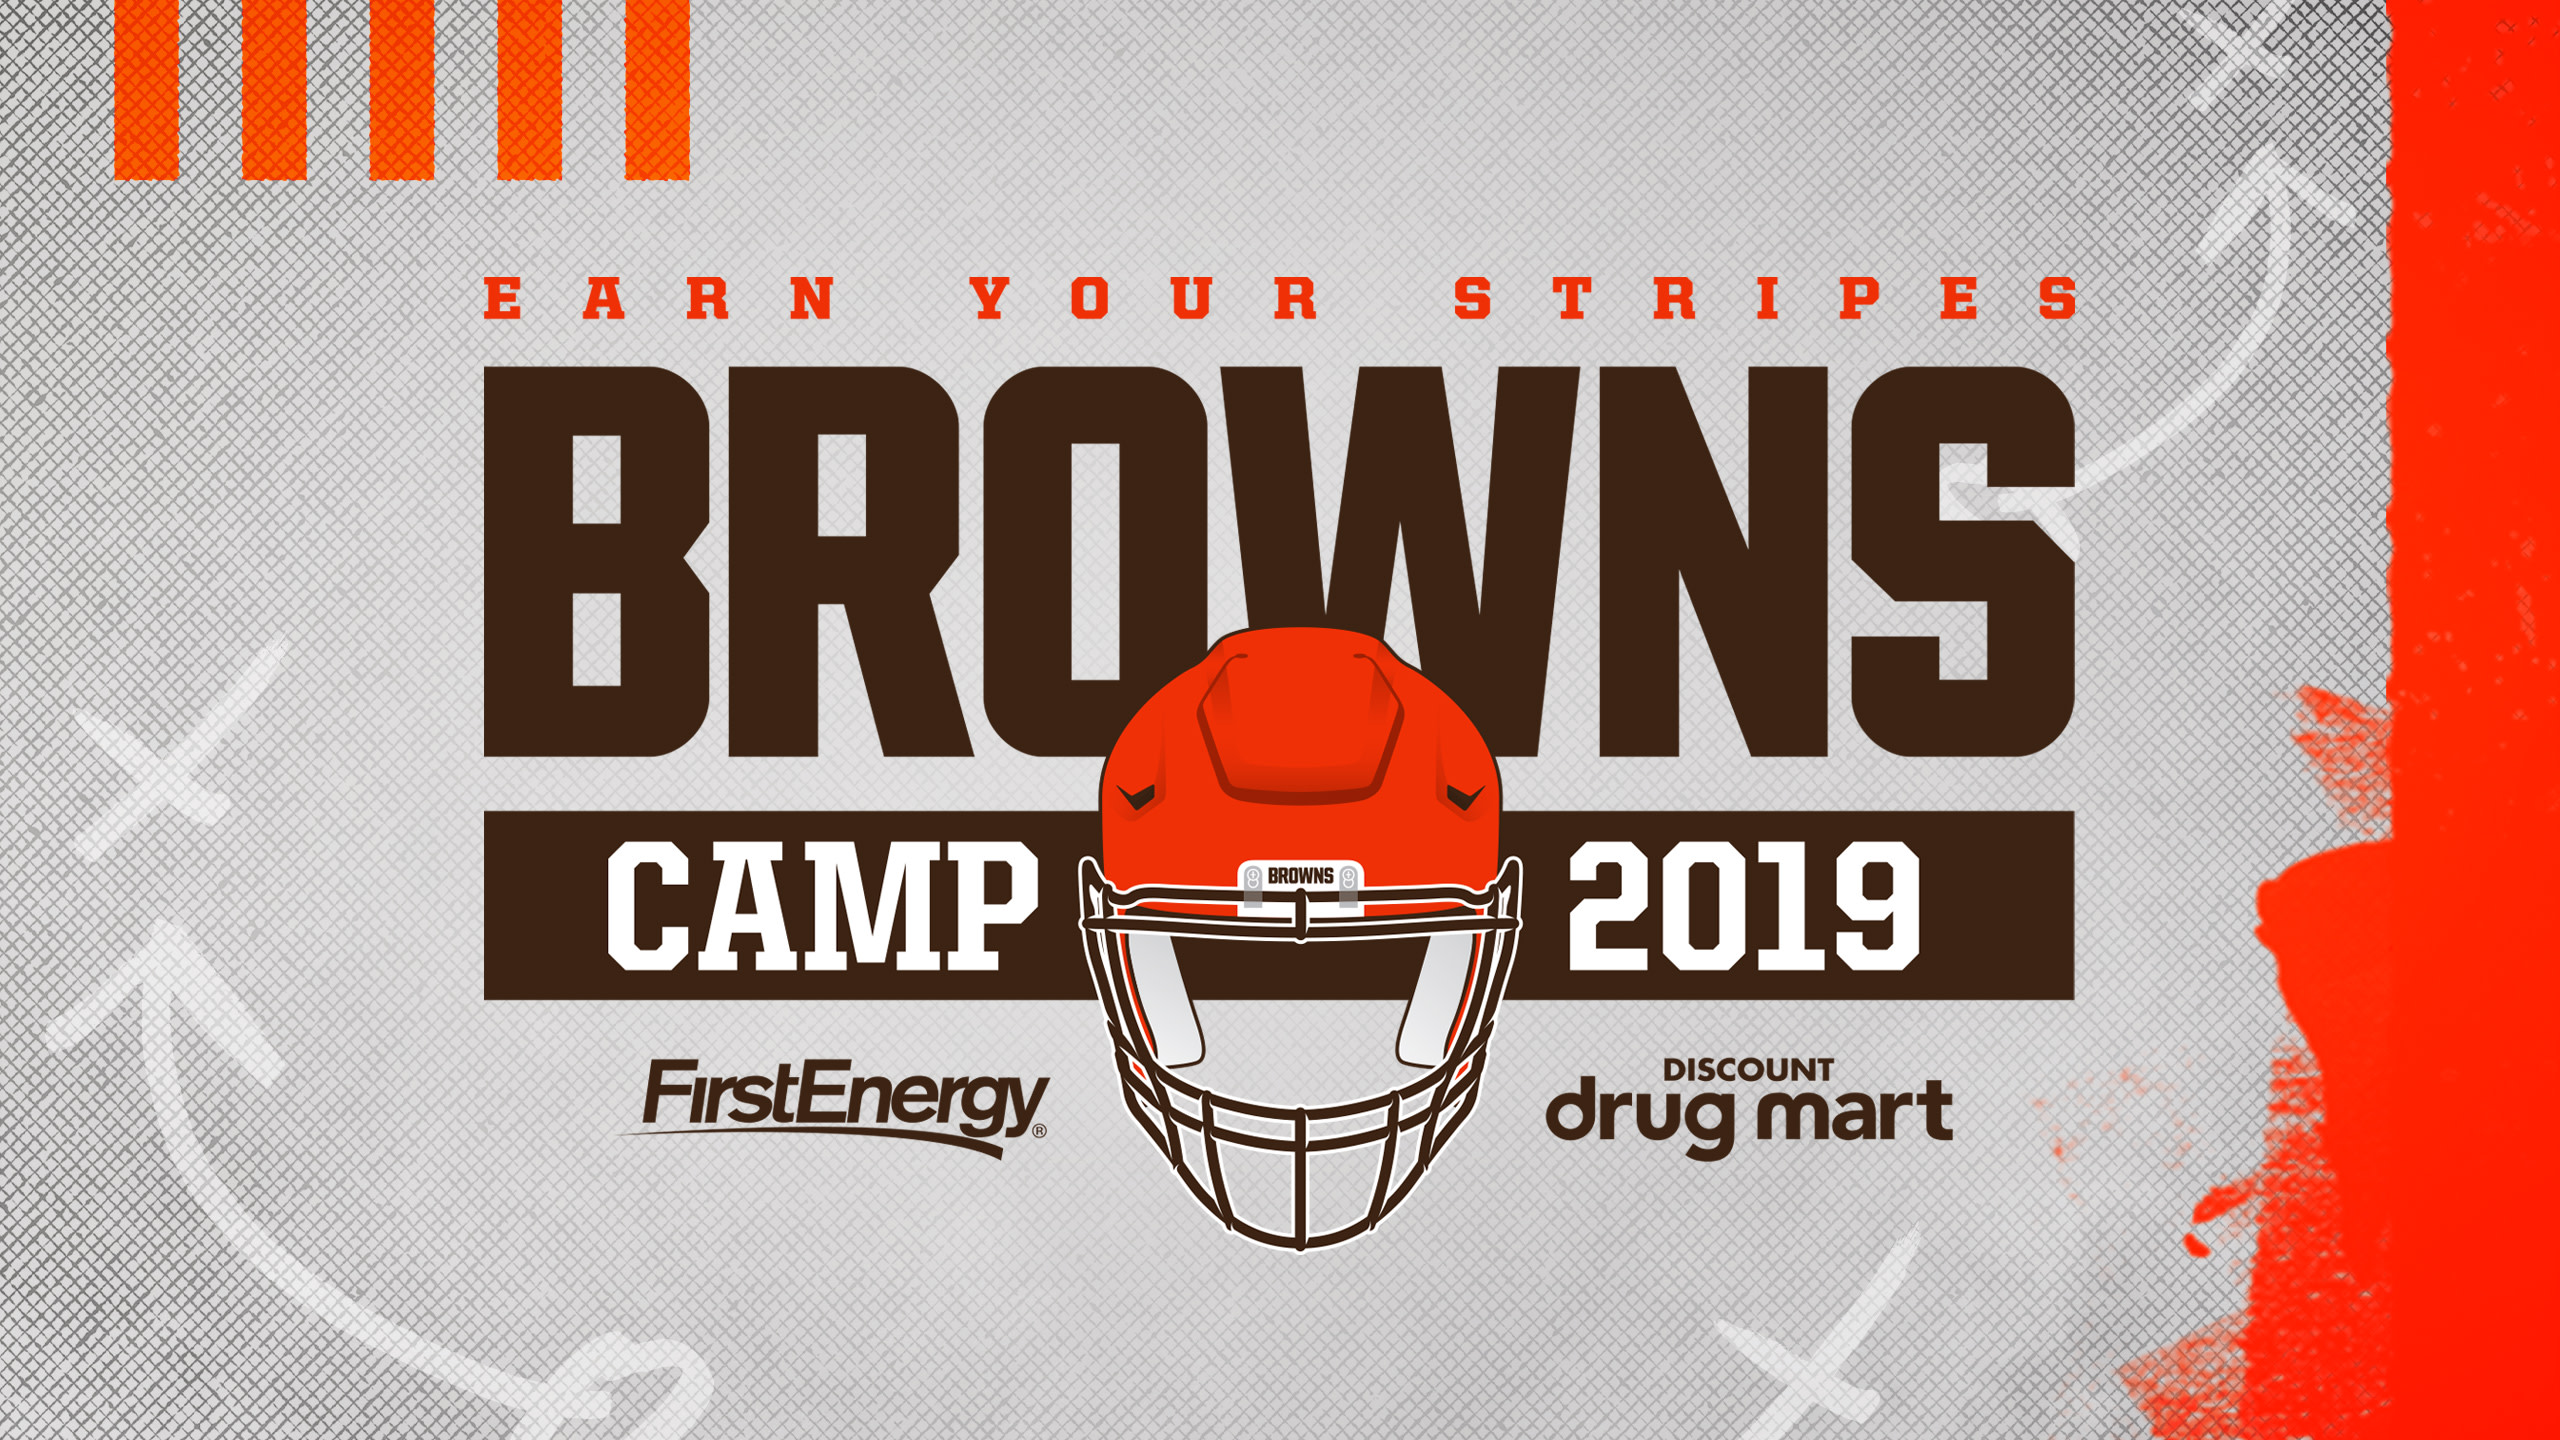 ad97d5a8 Browns 2019 Training Camp | Cleveland Browns - clevelandbrowns.com